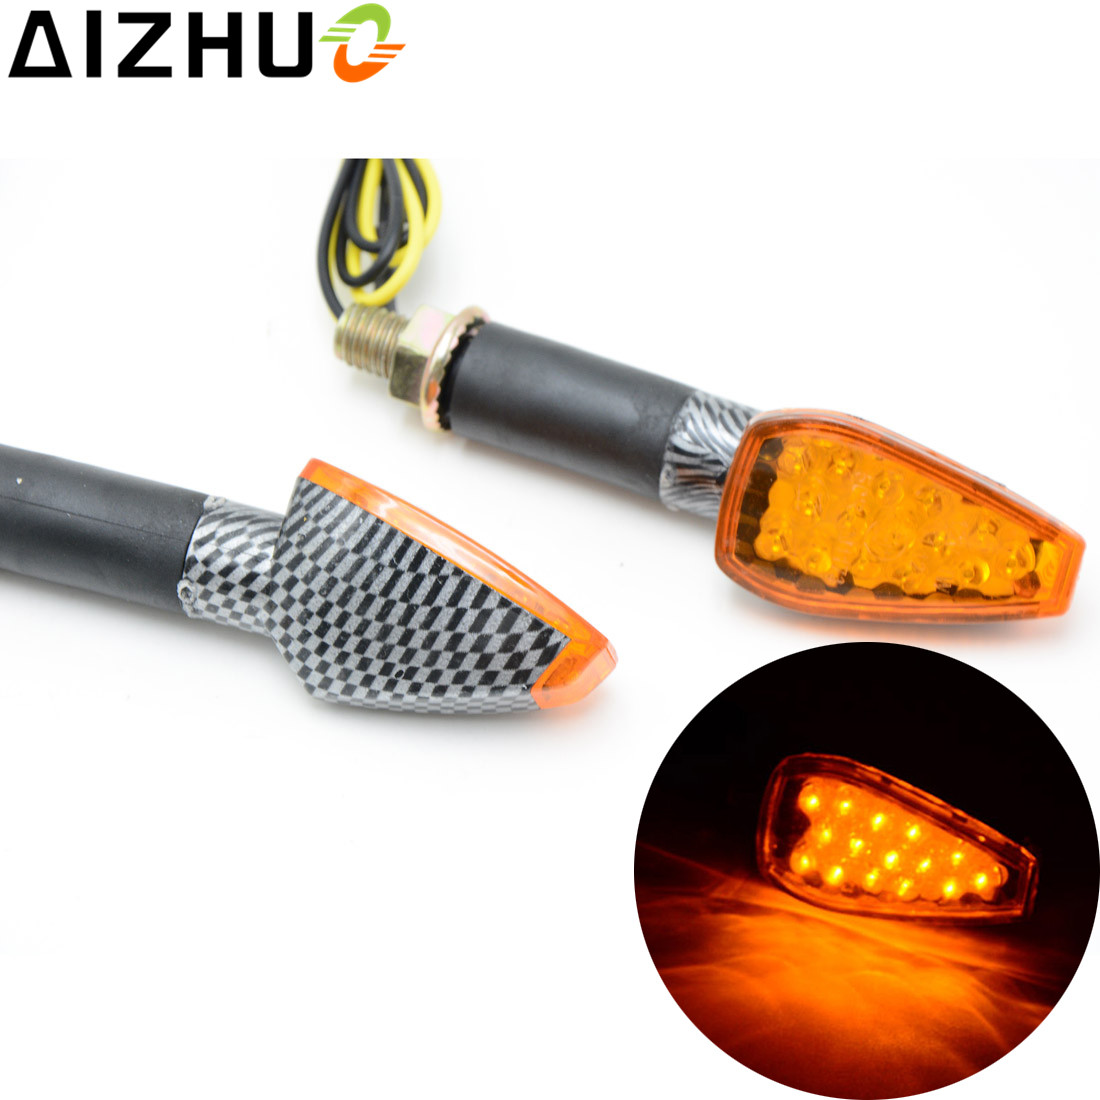 12v Led Blinker Us 7 97 16 Off Amber Blue Universal Motorcycle Turn Signal Light 12v Led Blinker Lamp For Bmw F800r F650gs F700gs F800gs S1000r G310r R1200gs On